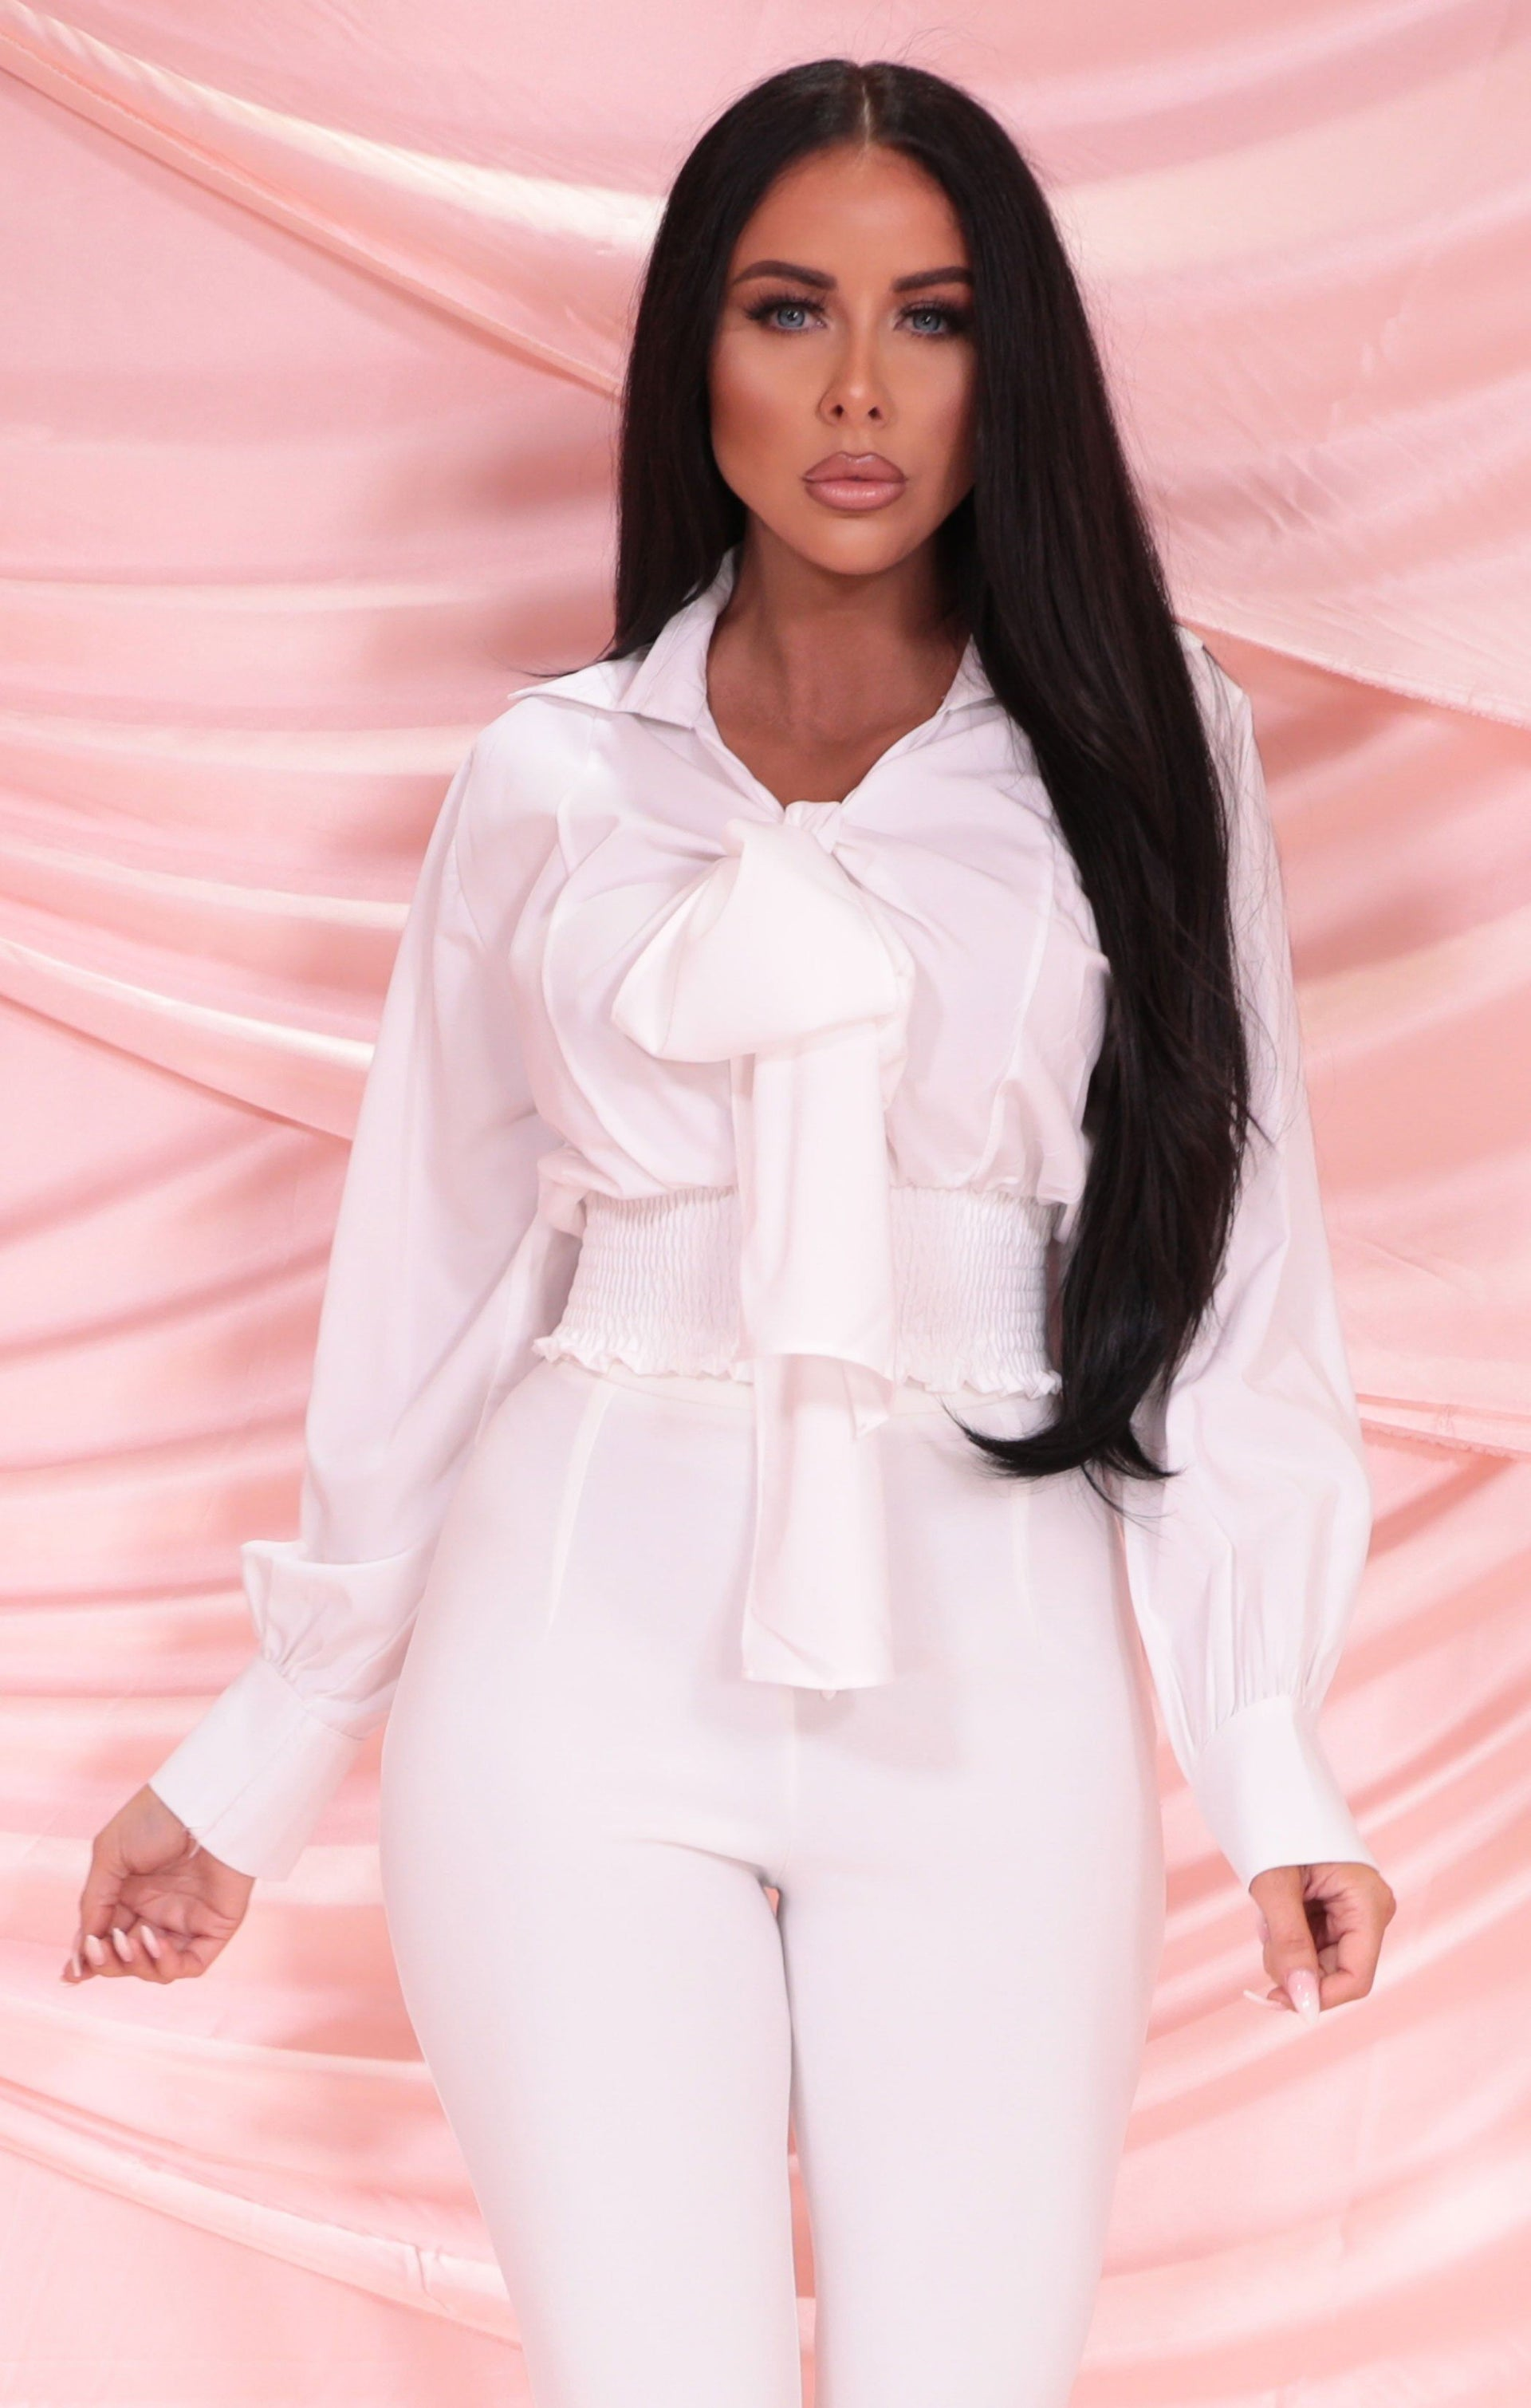 White Shrilled Waist Cuffed Tie Front Top - Balin